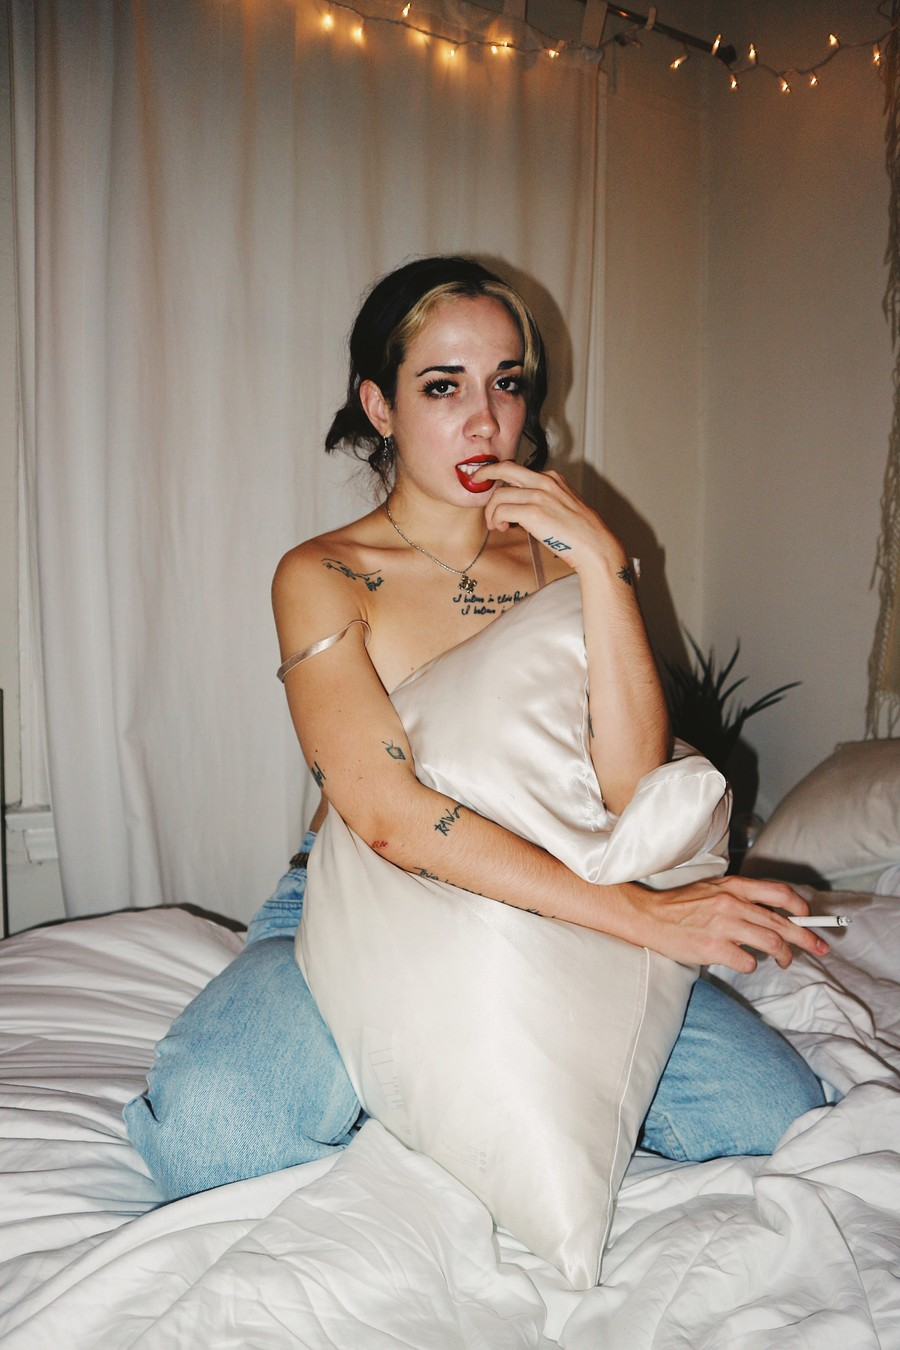 Sizzy Rocket, a white woman, sits on a bed holding a pillow. Her hair is dark and she's pouting, and she has many tattoos.